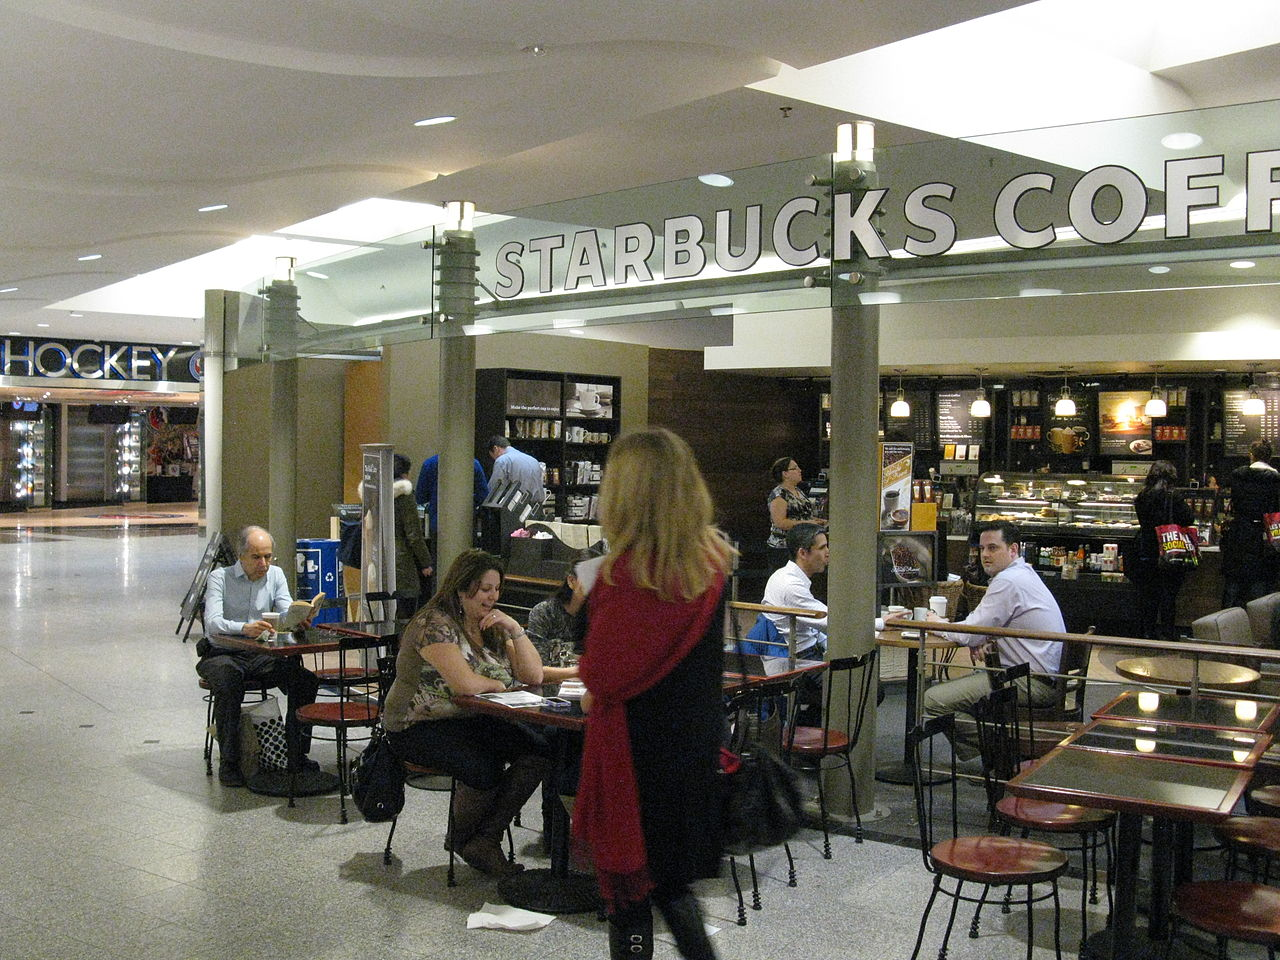 How could there not be a Starbucks underground? (Image Credit: booledozer, Wikimedia)